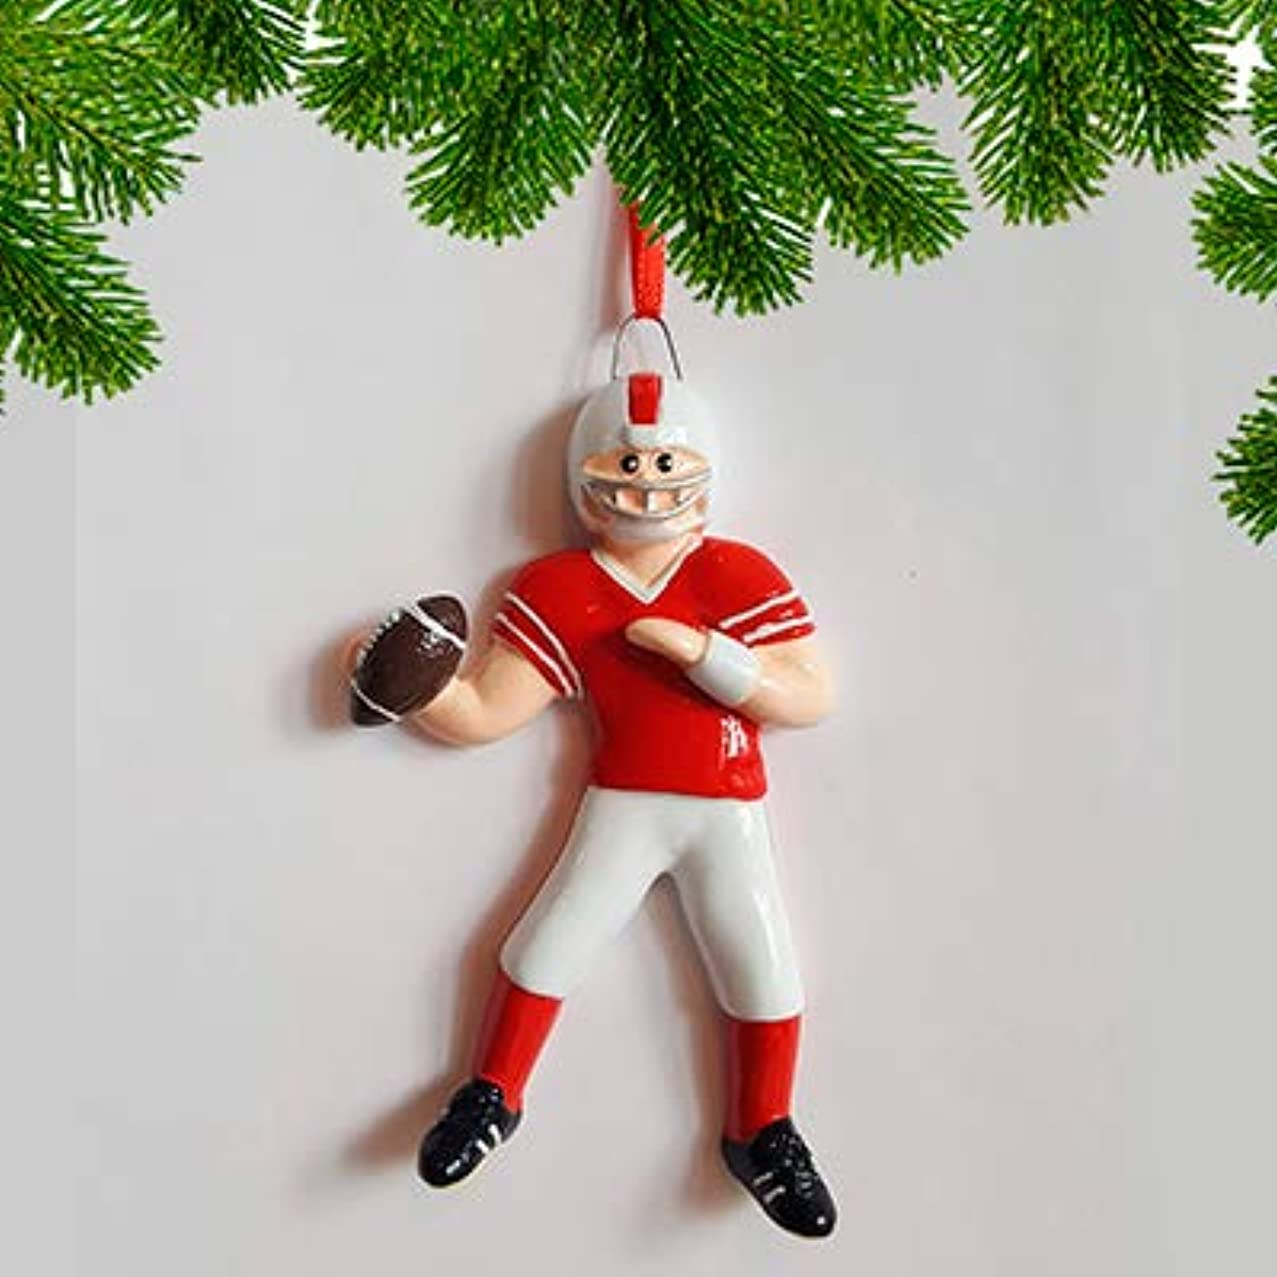 Personalized Football Boy Christmas Tree Ornament 2019 - Goal Star Team Athlete Playing Red Uniform Helmet Running Gridiron Score Profession Hobby School Coach Grand-Son Year - Free Customization